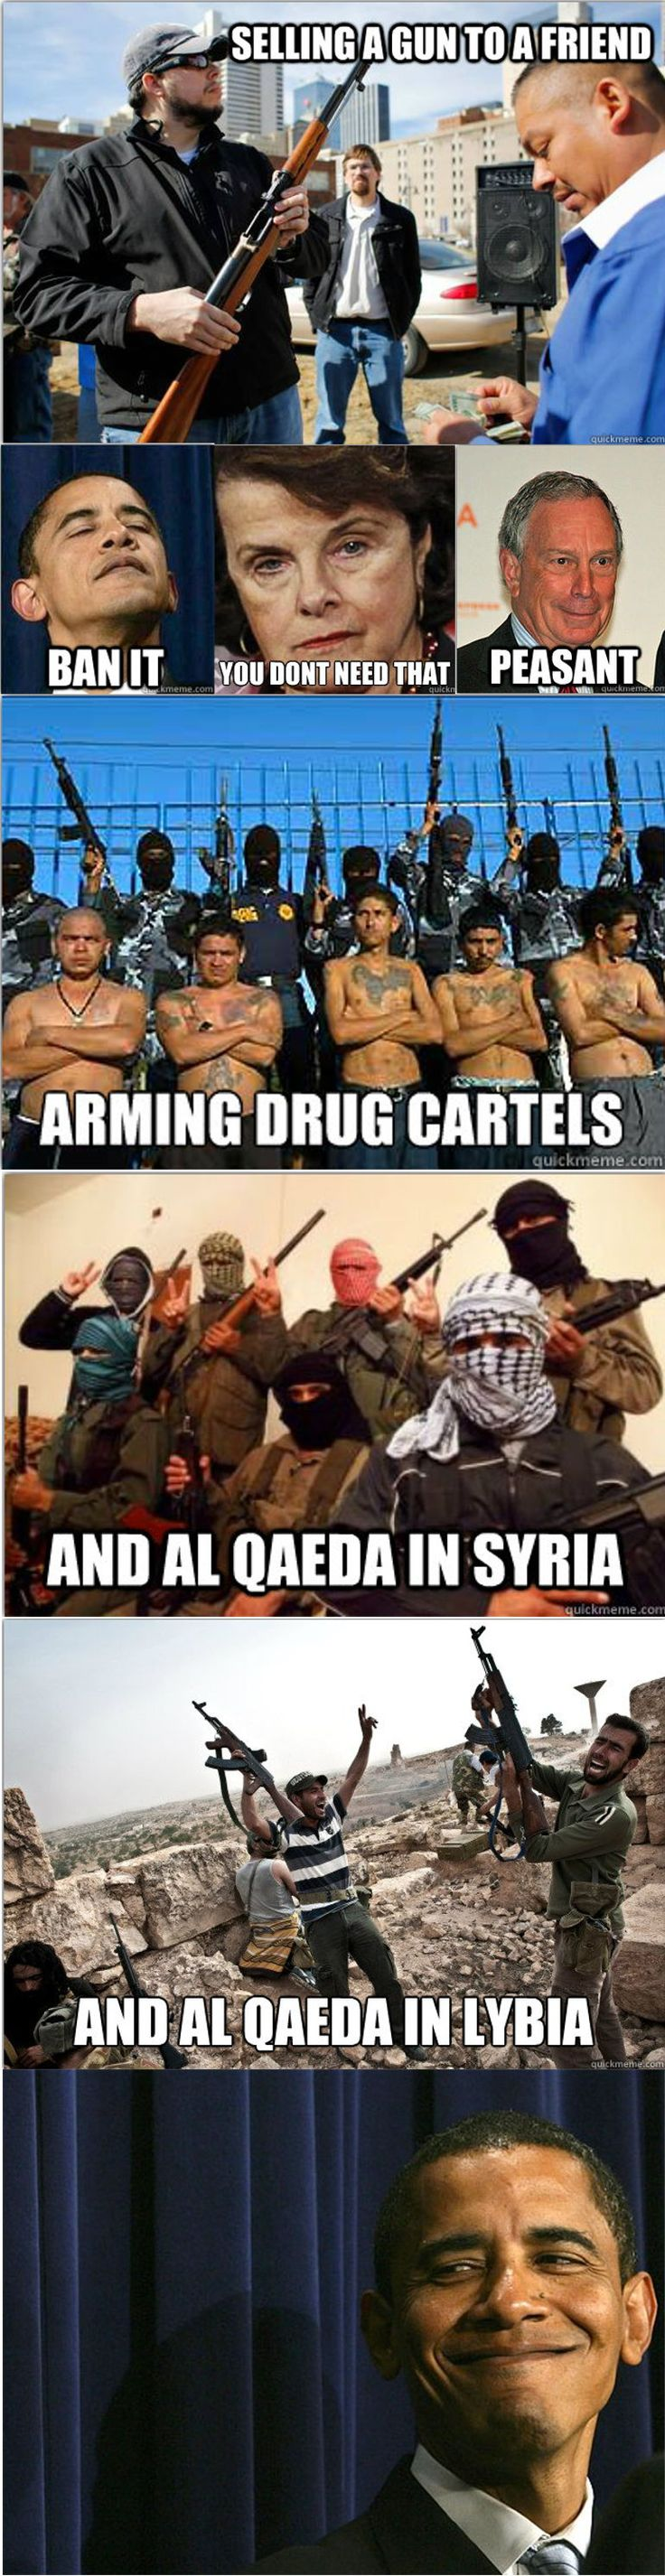 The creator of this meme must've conveniently forgotten about funding of Columbian and Nicaraguan drug cartels/Iran Contra/Saddam Hussein acquiring means to create WMD's/CIA training of Osama Bin Laden: ALL under the Reagan Administration.